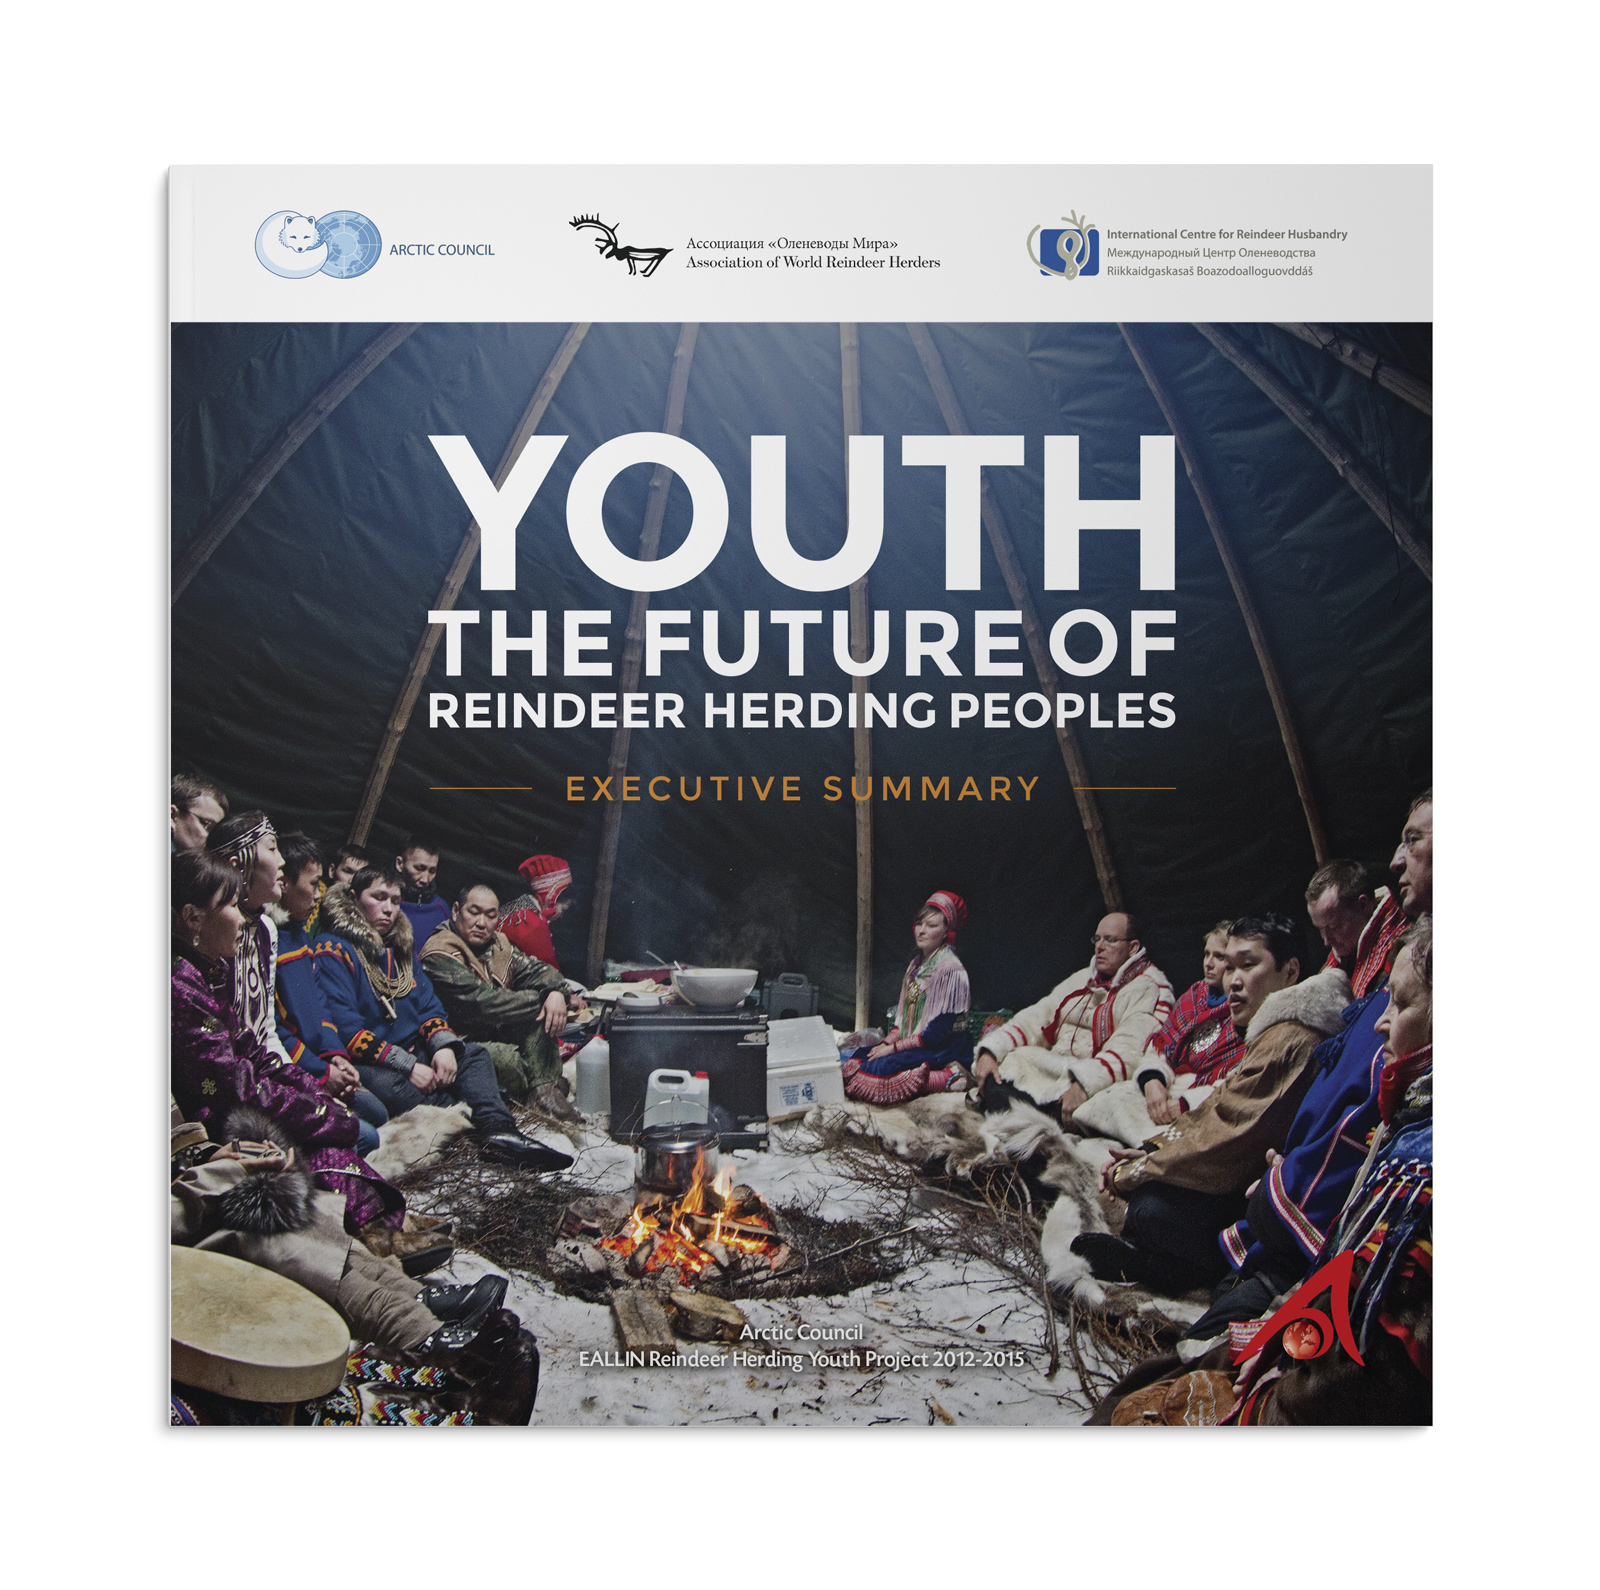 Youth – The Future of Reinder Herding Peoples